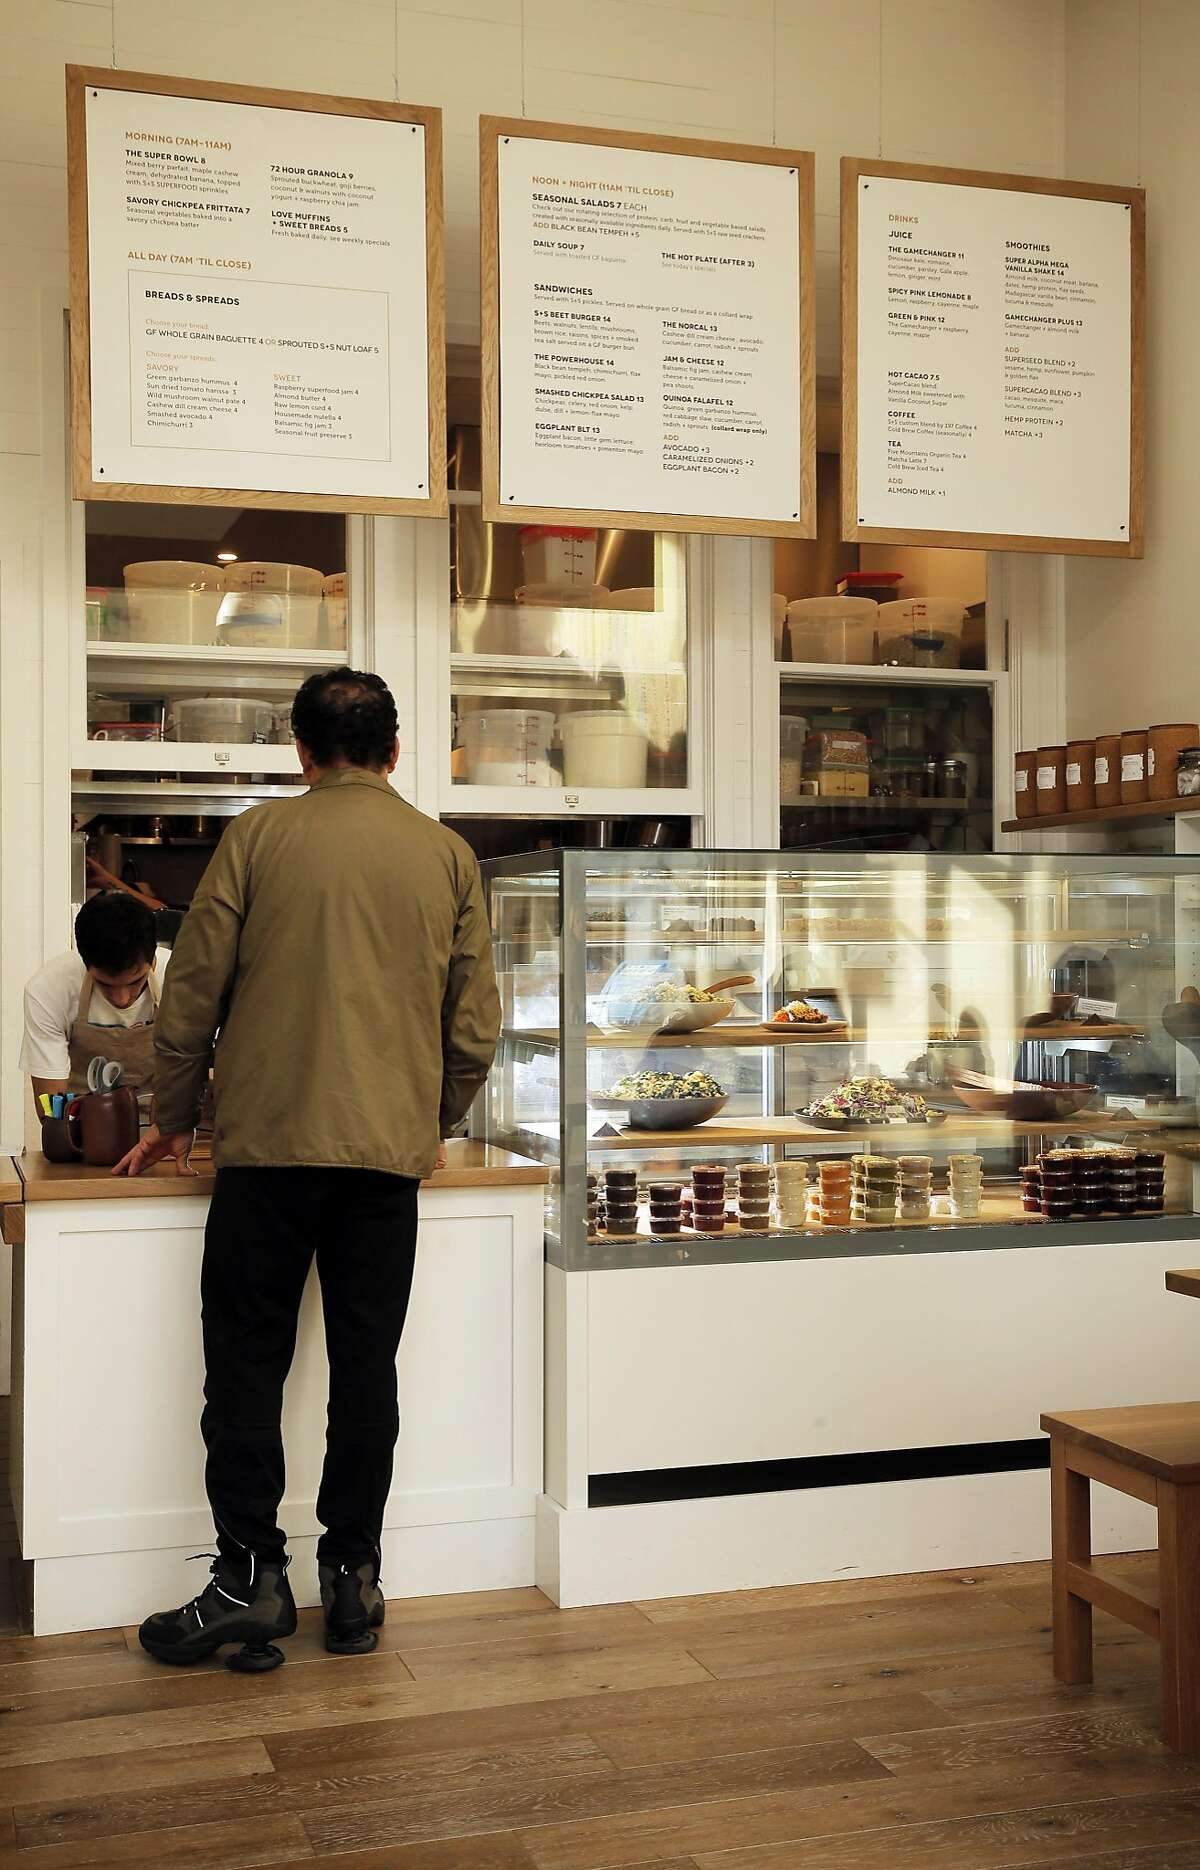 A customer orders food at Seed + Salt in San Francisco, Calif., on Sunday, January 4, 2015. Seed + Salt is a new breakfast-lunch restaurant in the Marina with vegan and gluten-free food, heavy on the vegetables and whole grains.